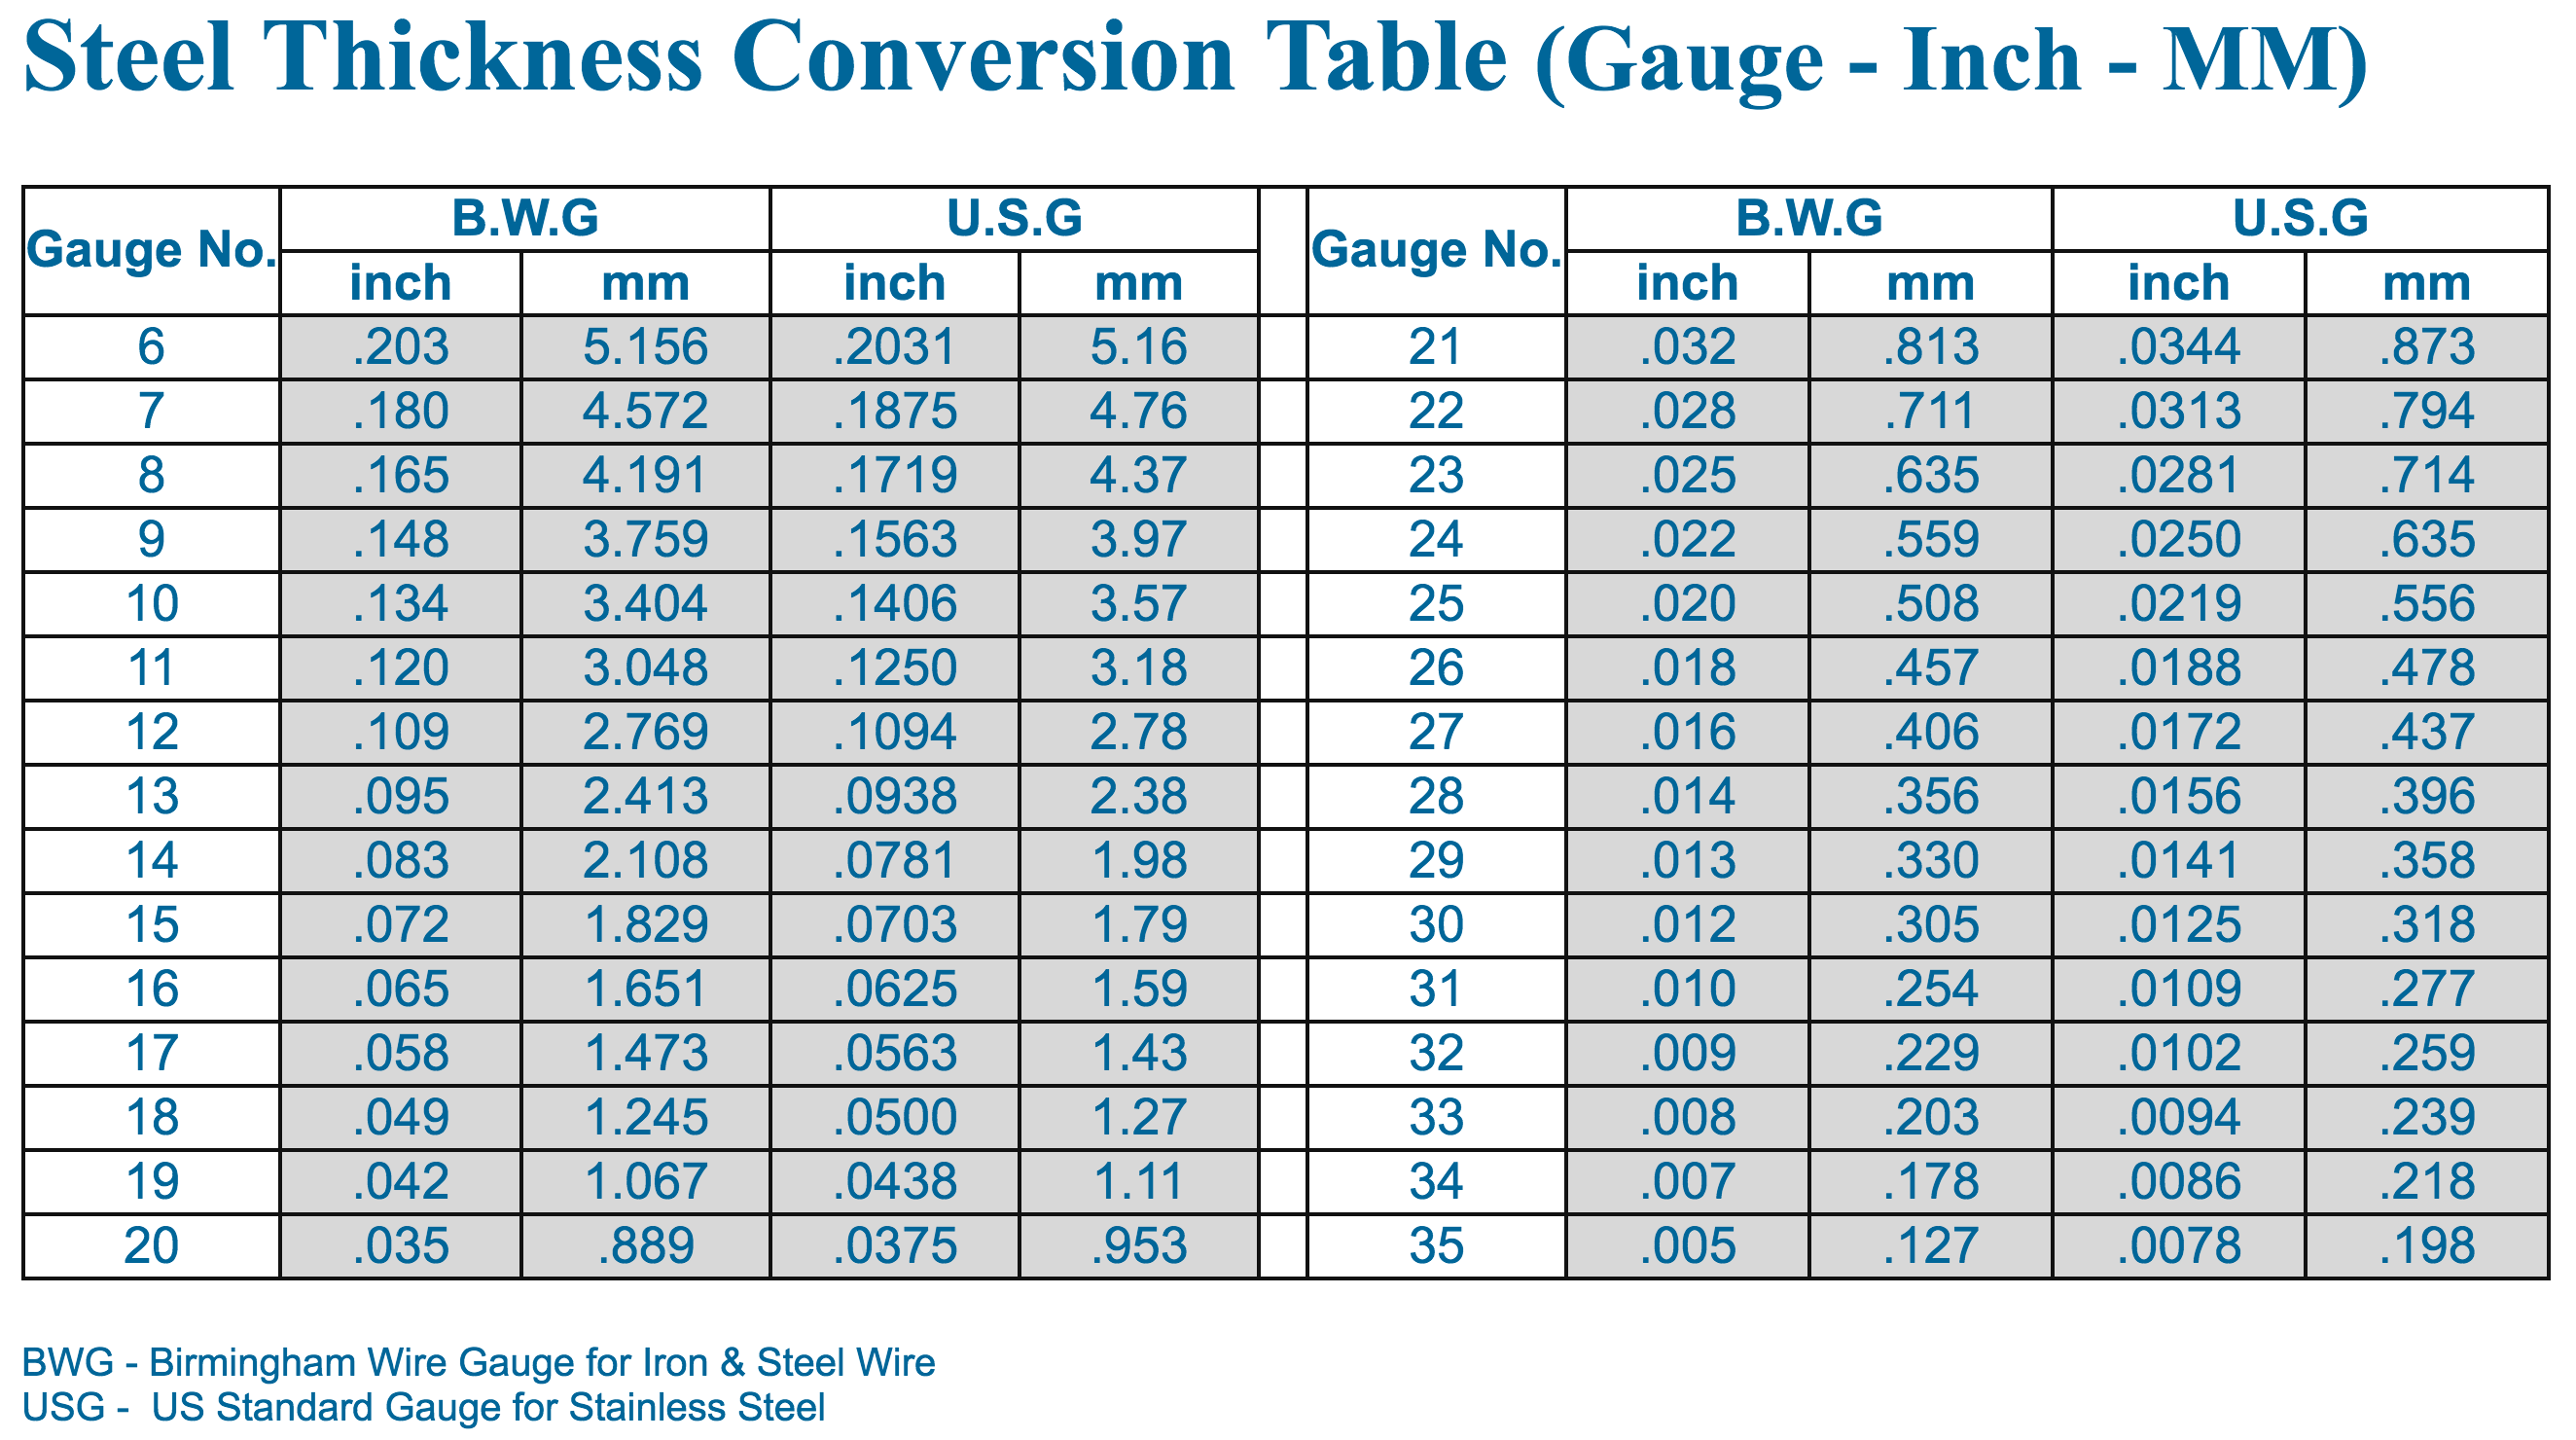 Conversion table wire gauge to inches gallery wiring table and steel thickness conversion table gauge inch mm usa steel thickness conversion table gauge inch mm usa greentooth Choice Image